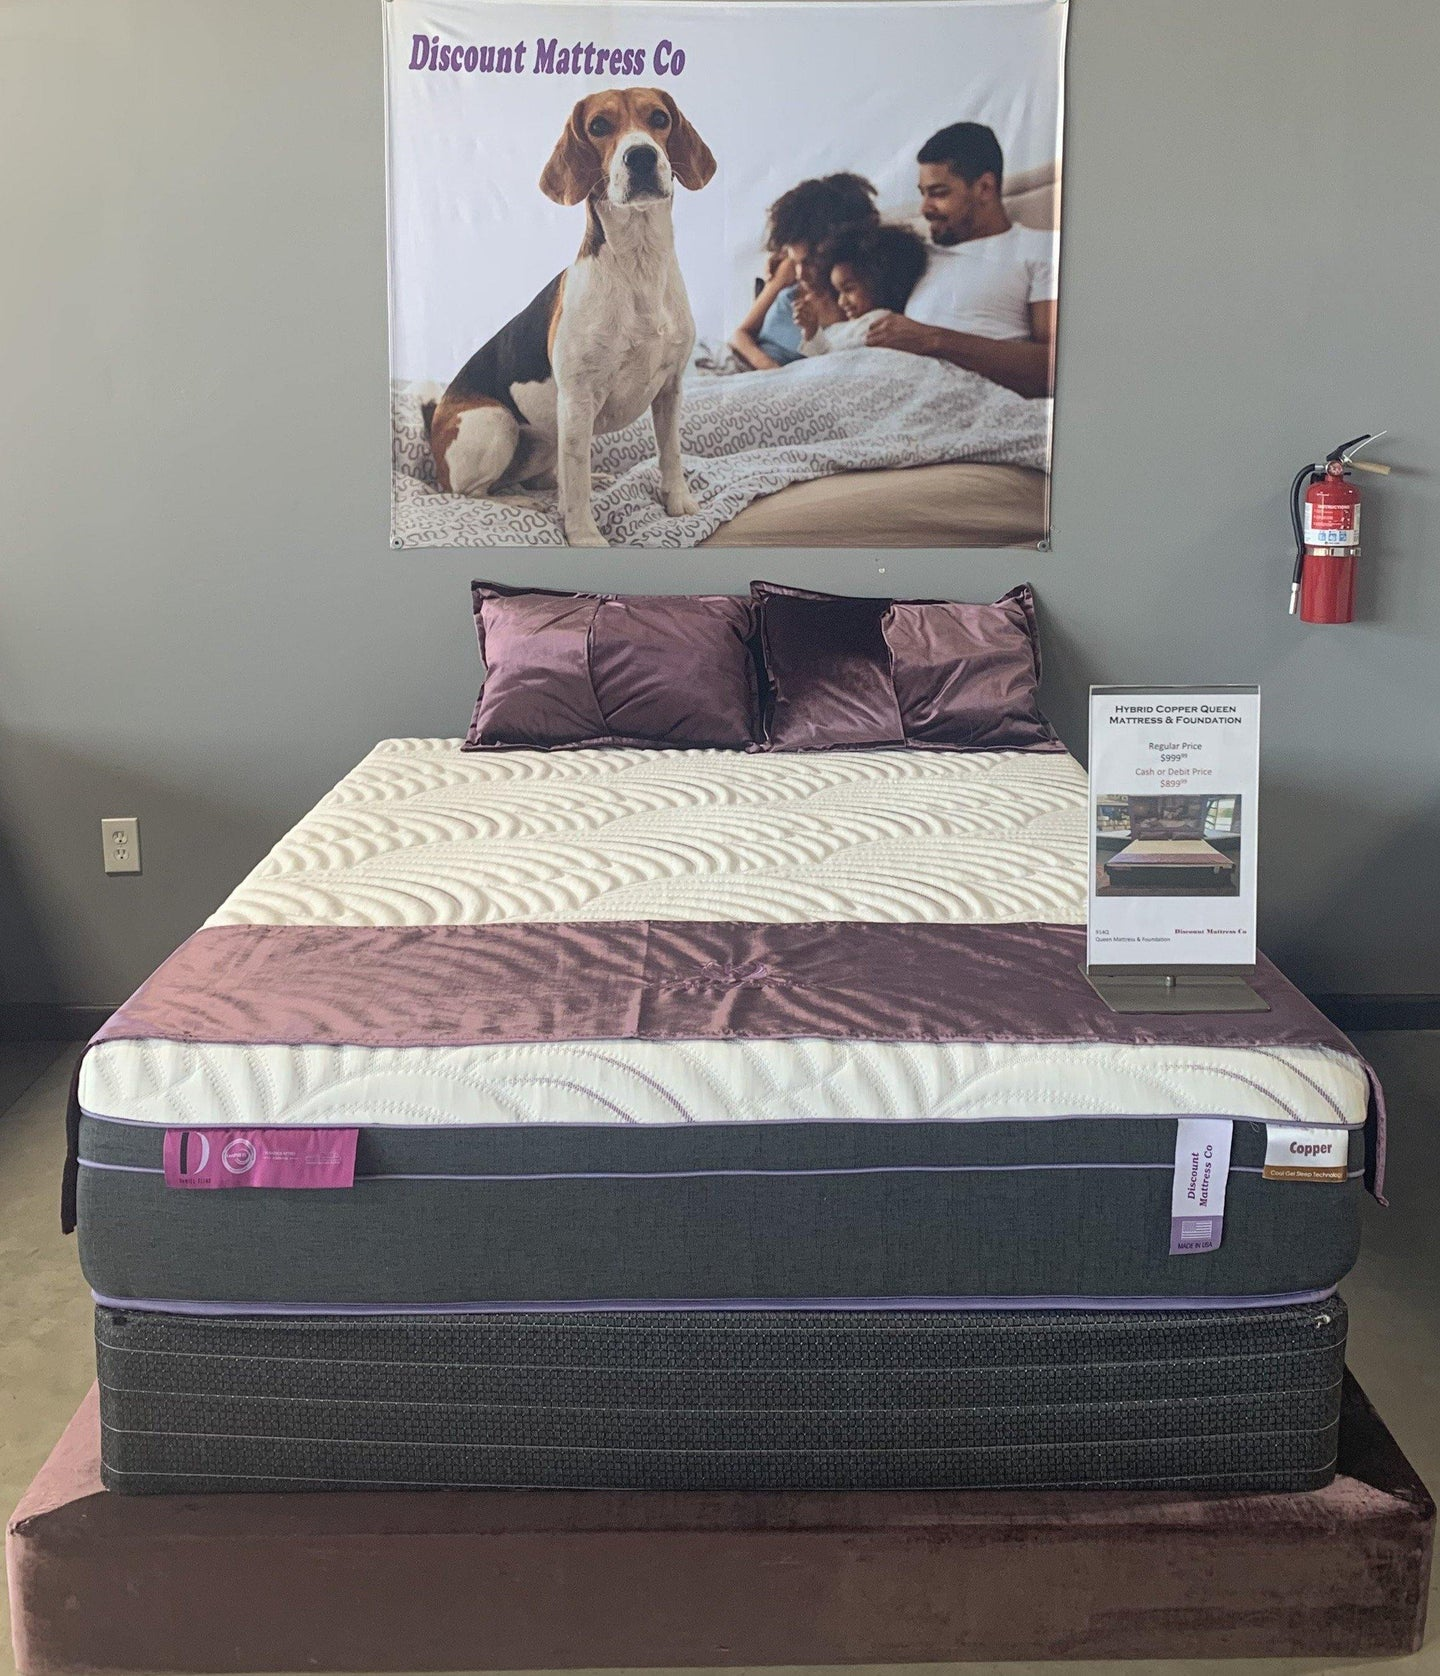 Hybrid Copper Mattress and Foundation - Discount Mattress Co